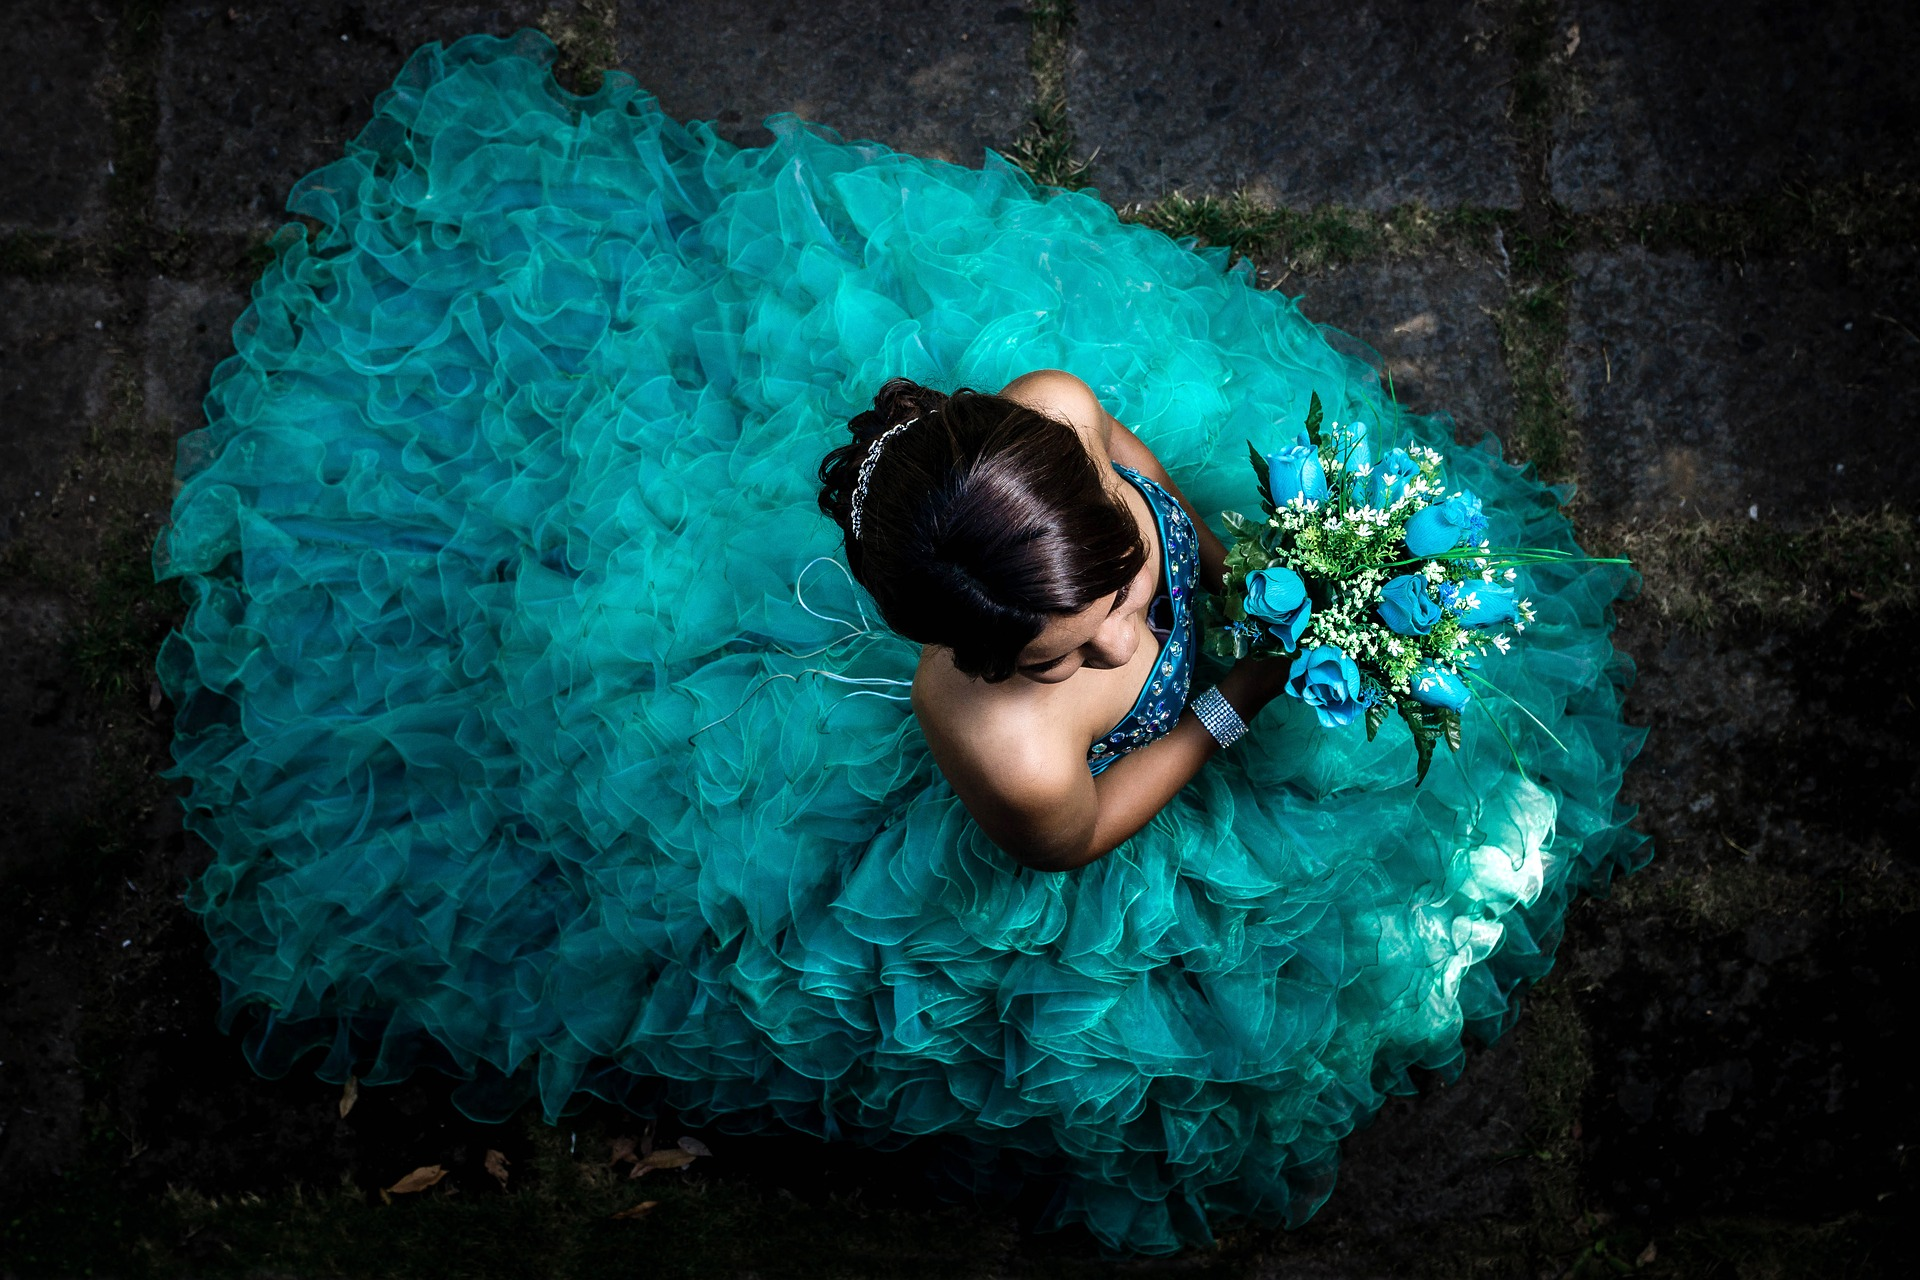 A Latina girl in a full, formal teal gown, and holding a bouquet of turquoise flowers, shot from above.